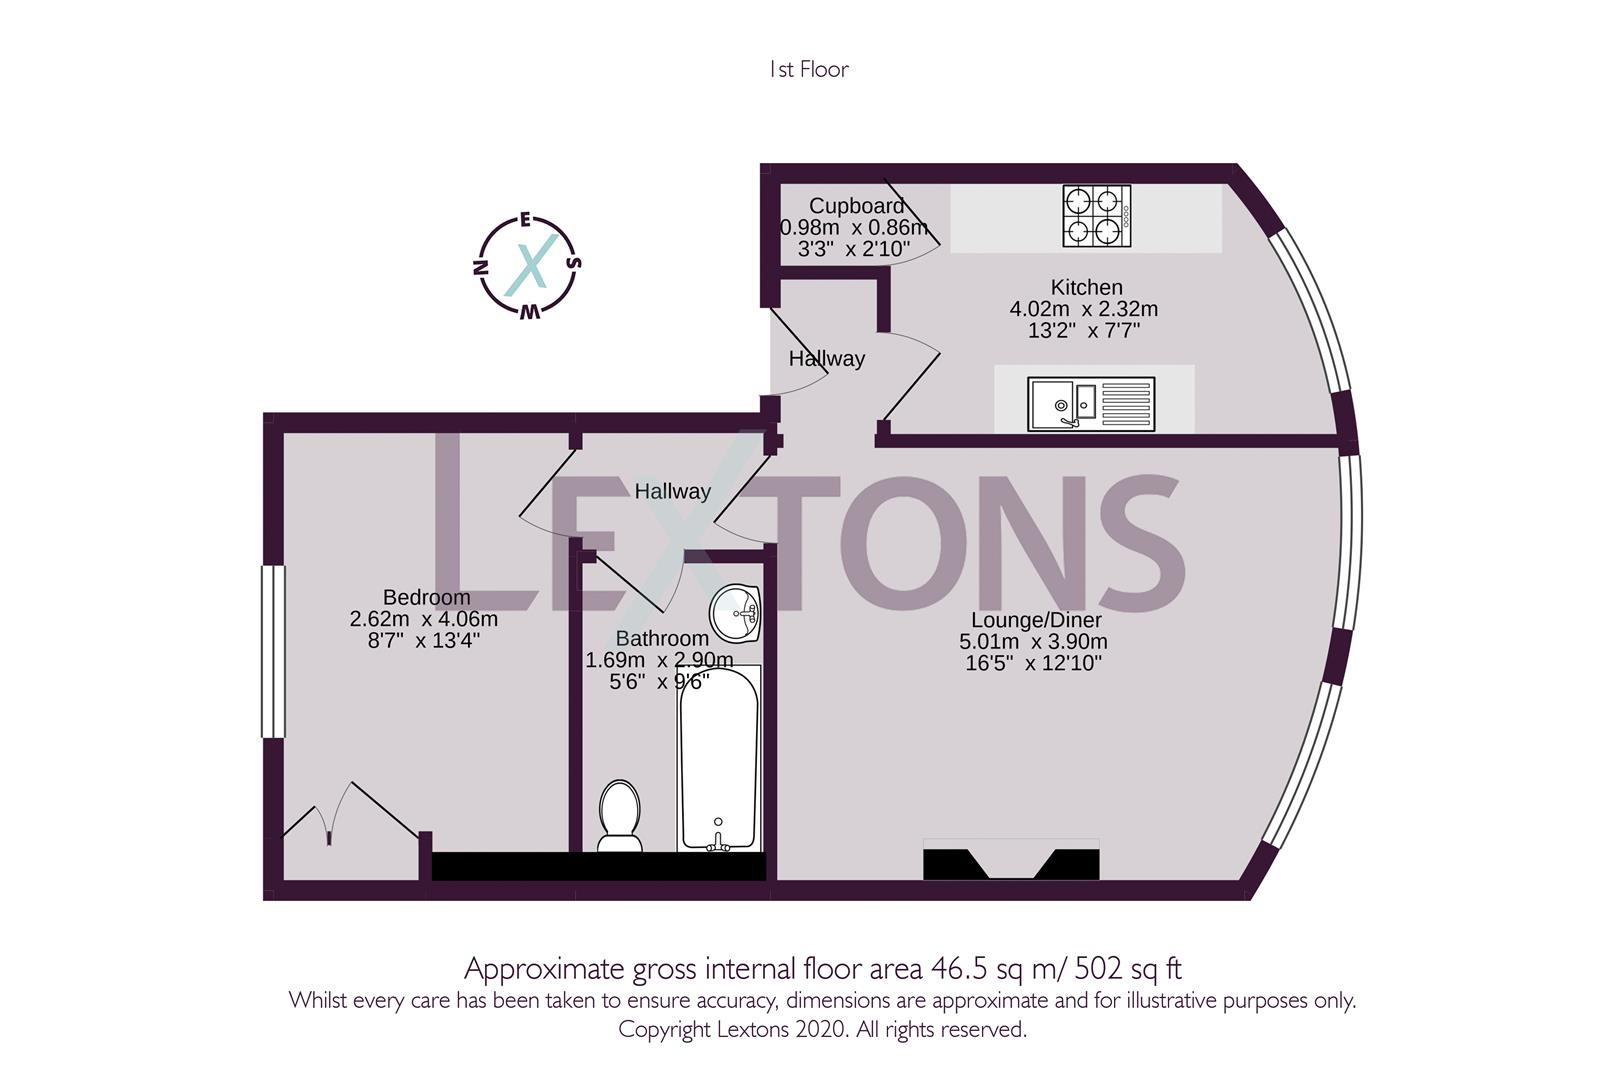 Floorplans For Montpelier Place, Brighton